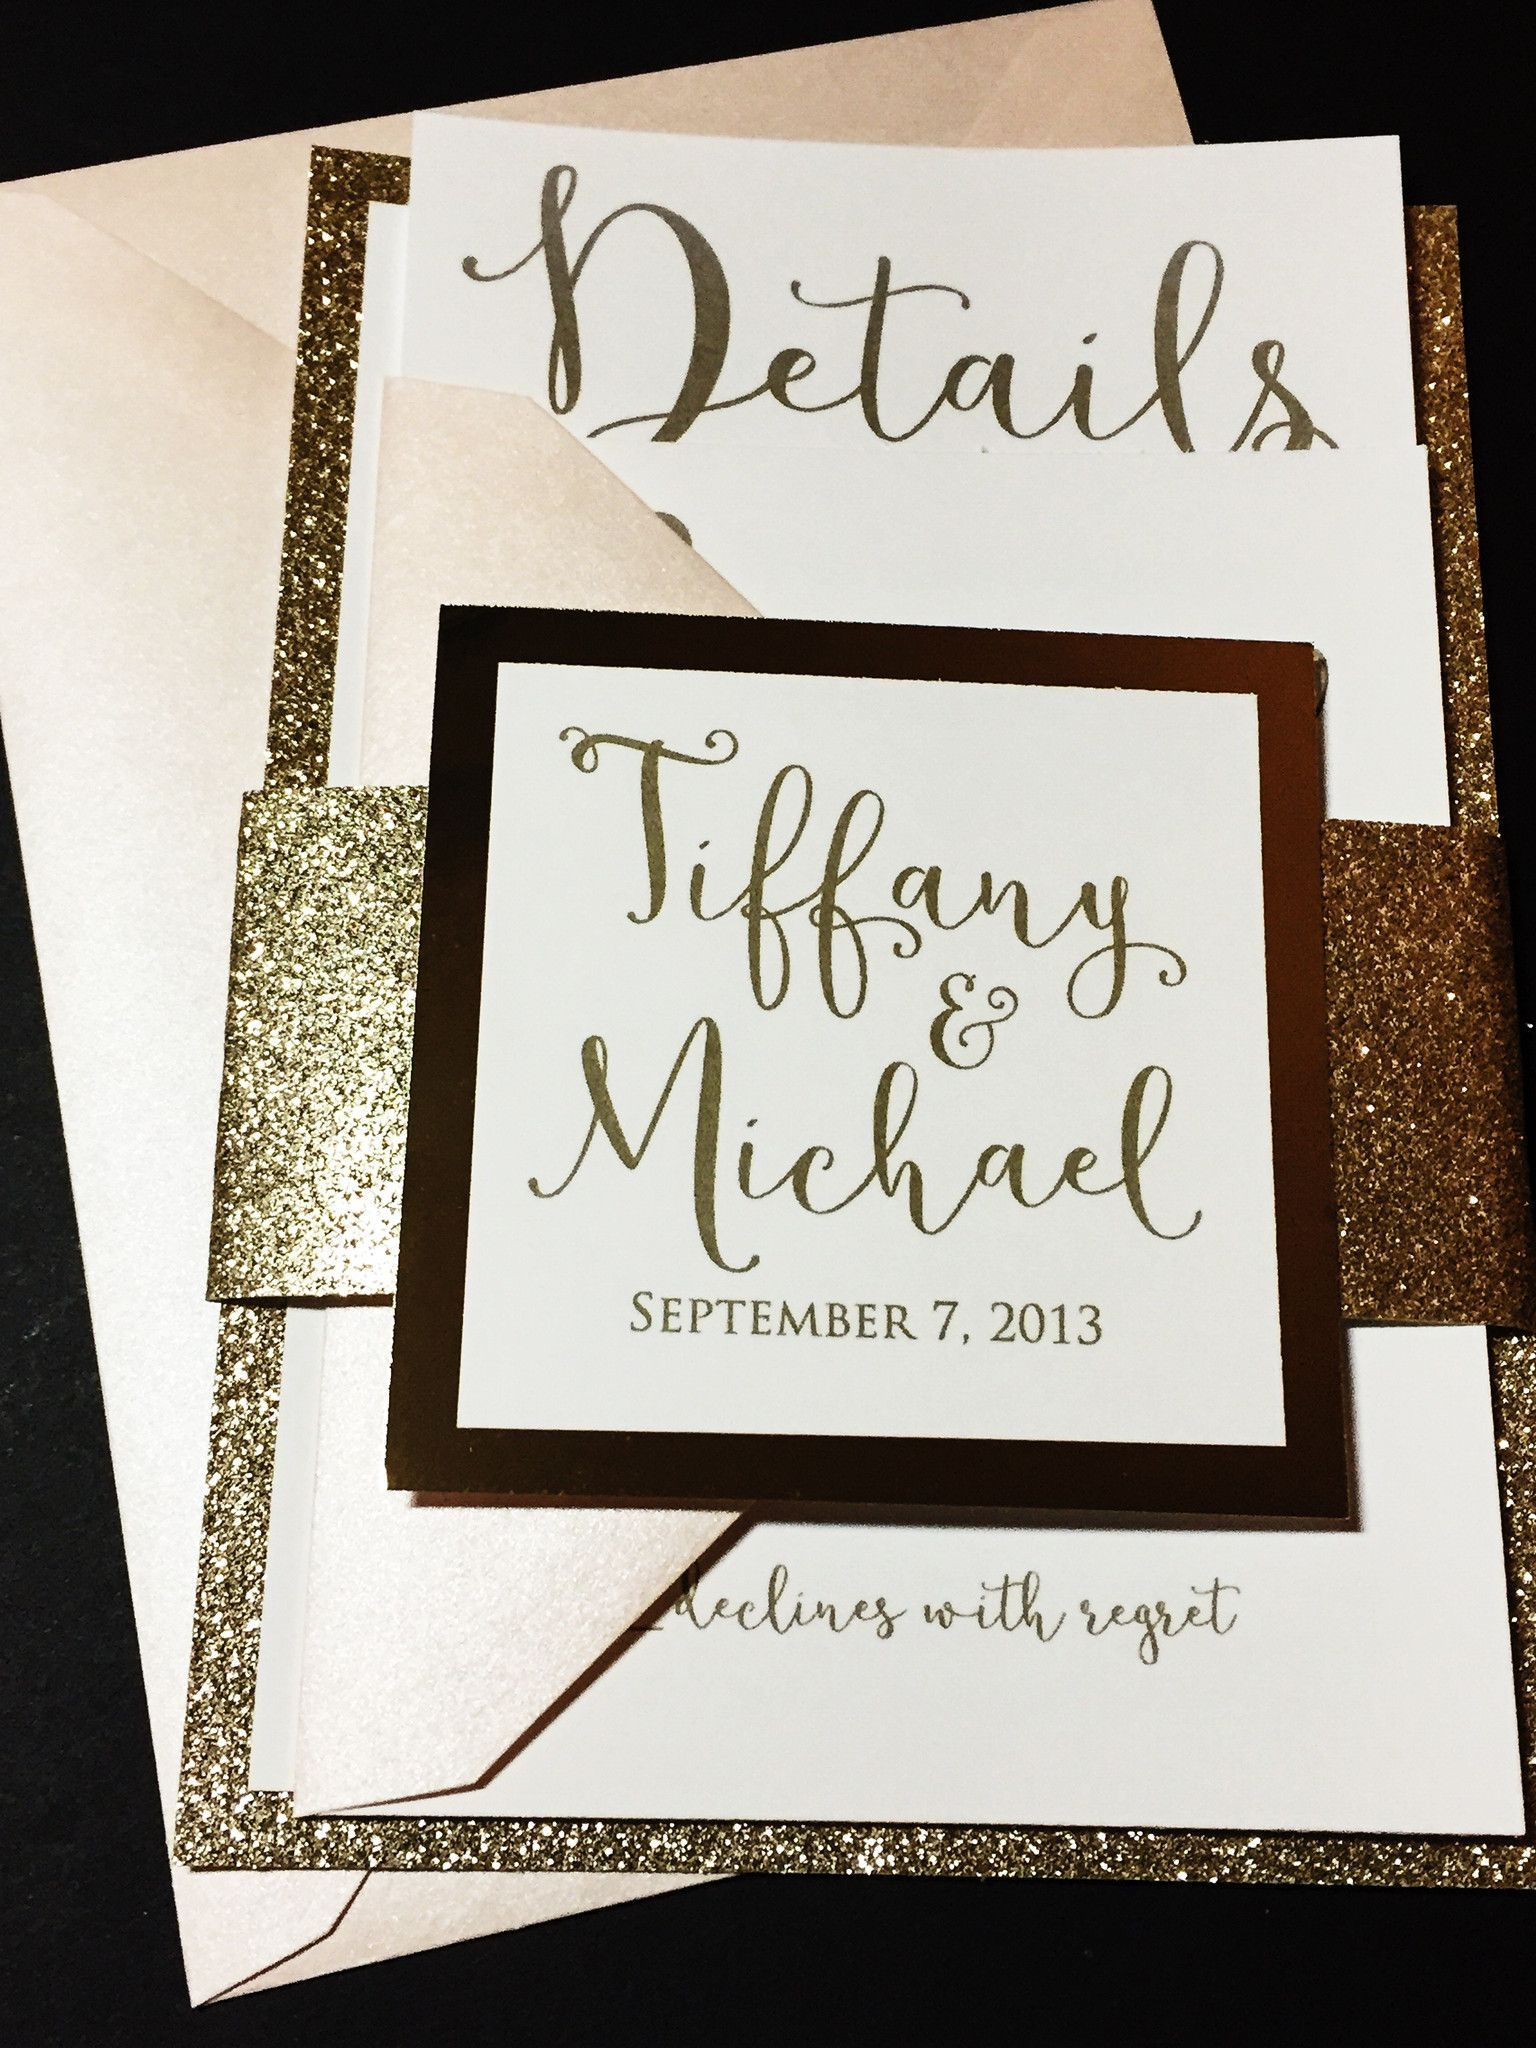 This listing is for a sample of a layered wedding